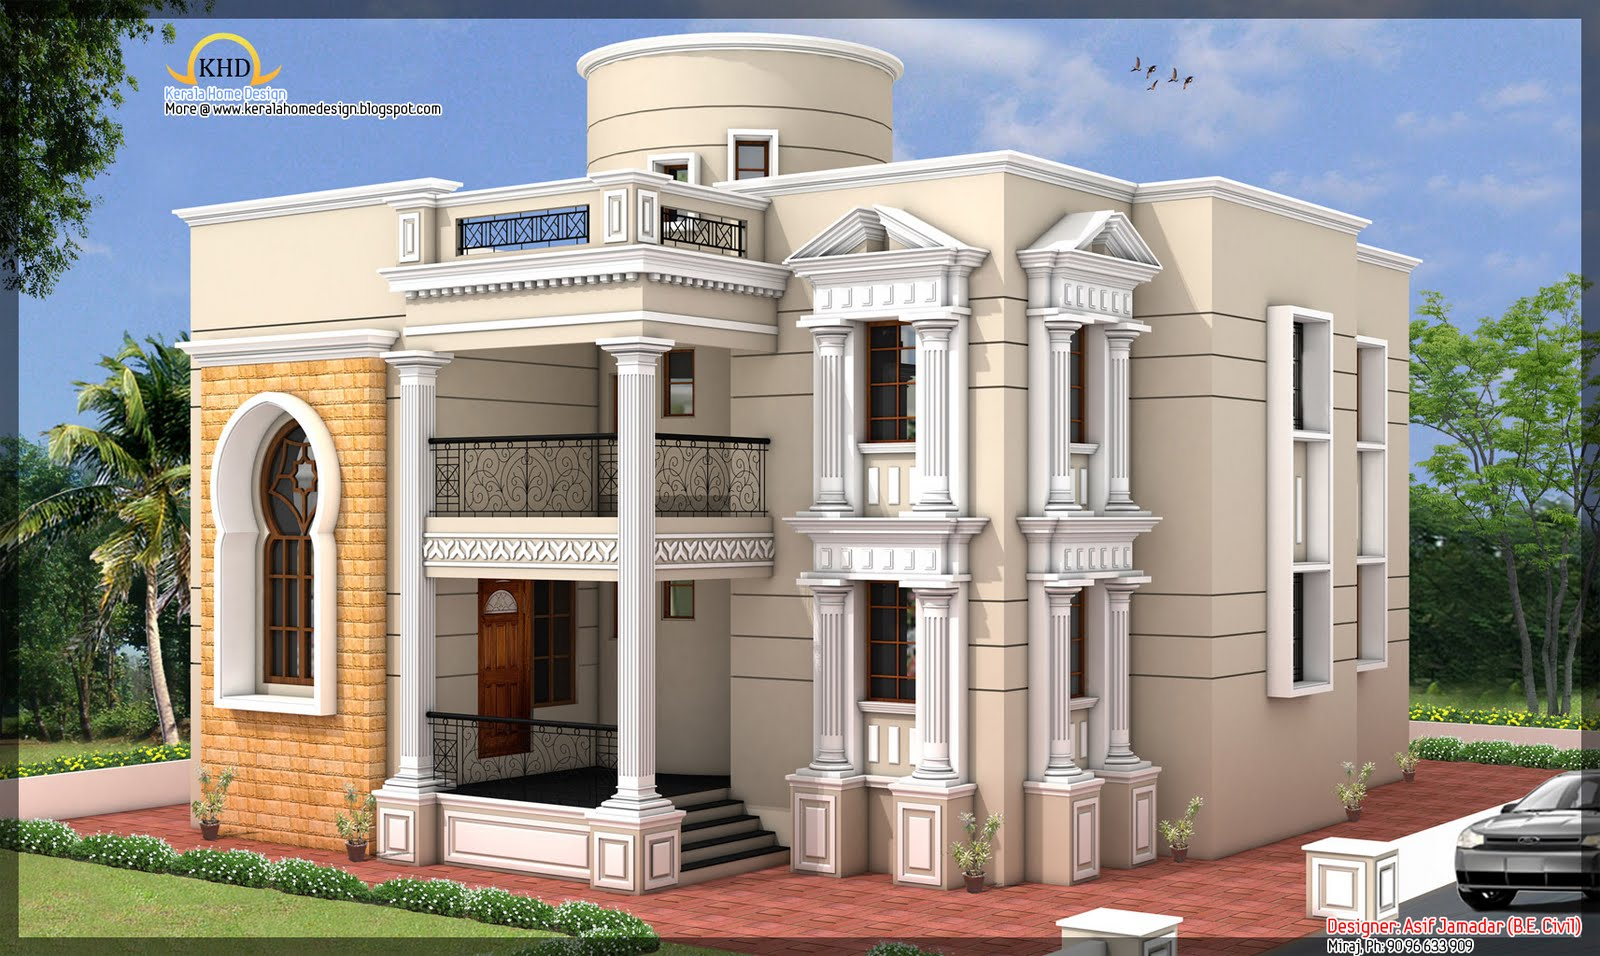 Remarkable Home House Design 1600 x 956 · 282 kB · jpeg